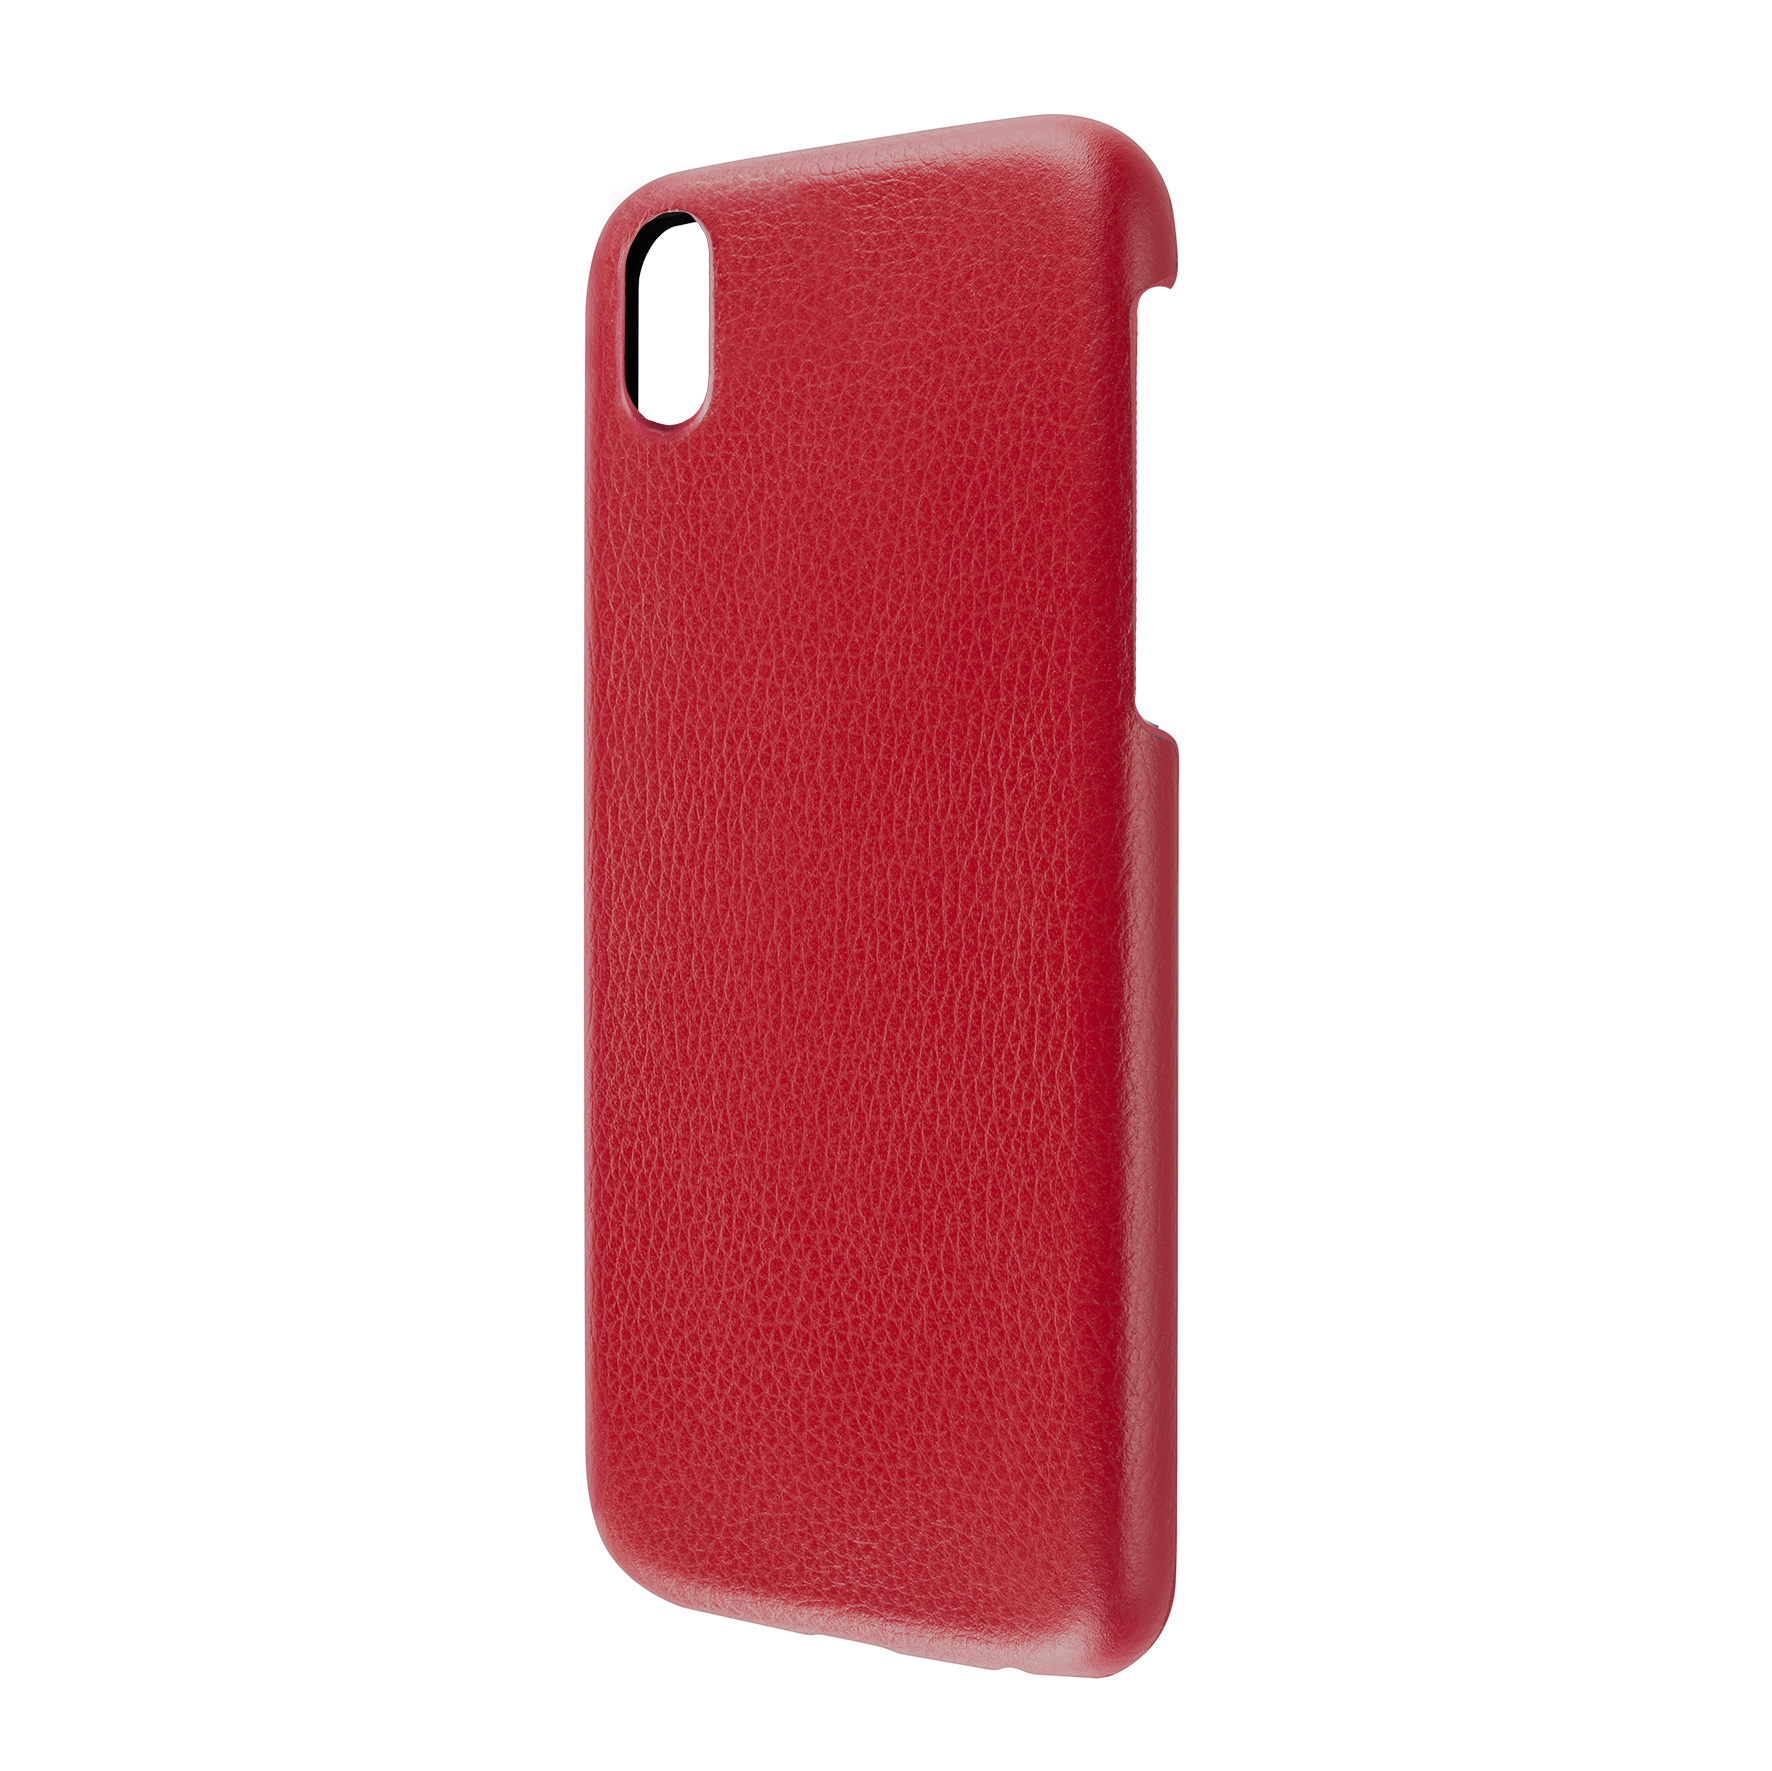 Artwizz Leather Clip edle Schutz-Hülle Echt-Leder iPhone X 10 Cover rot B-Ware – Bild 7